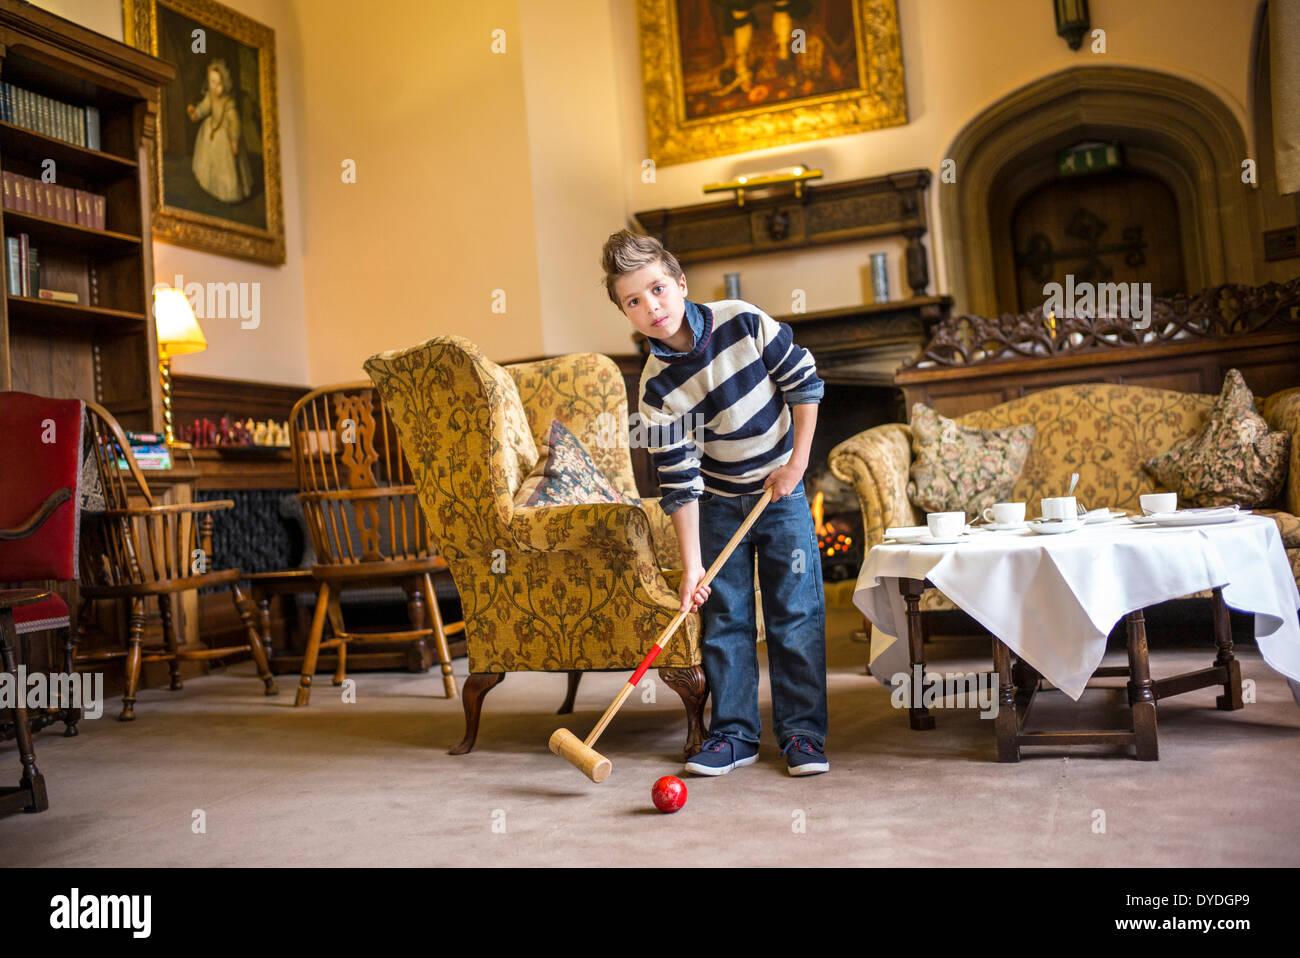 A boy plays croquet in the house at Thornbury Castle. - Stock Image